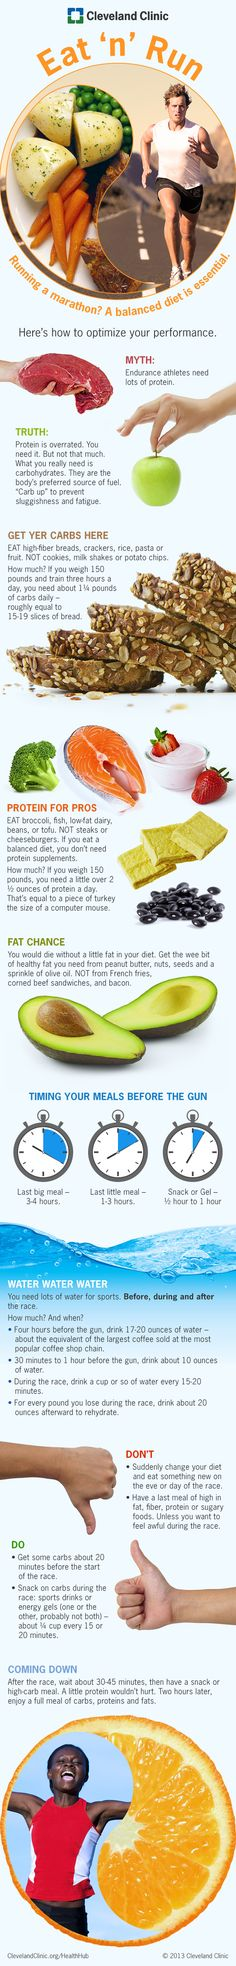 Fueling Food for A Marathon Run (Infographic) - If you're running a marathon, you need a game plan for eating right. Getting the proper amount of nourishment before, during and after a run can make all the difference to your success. Find out how to balance your protein, carb and fat intake and what you can do to stay well hydrated.